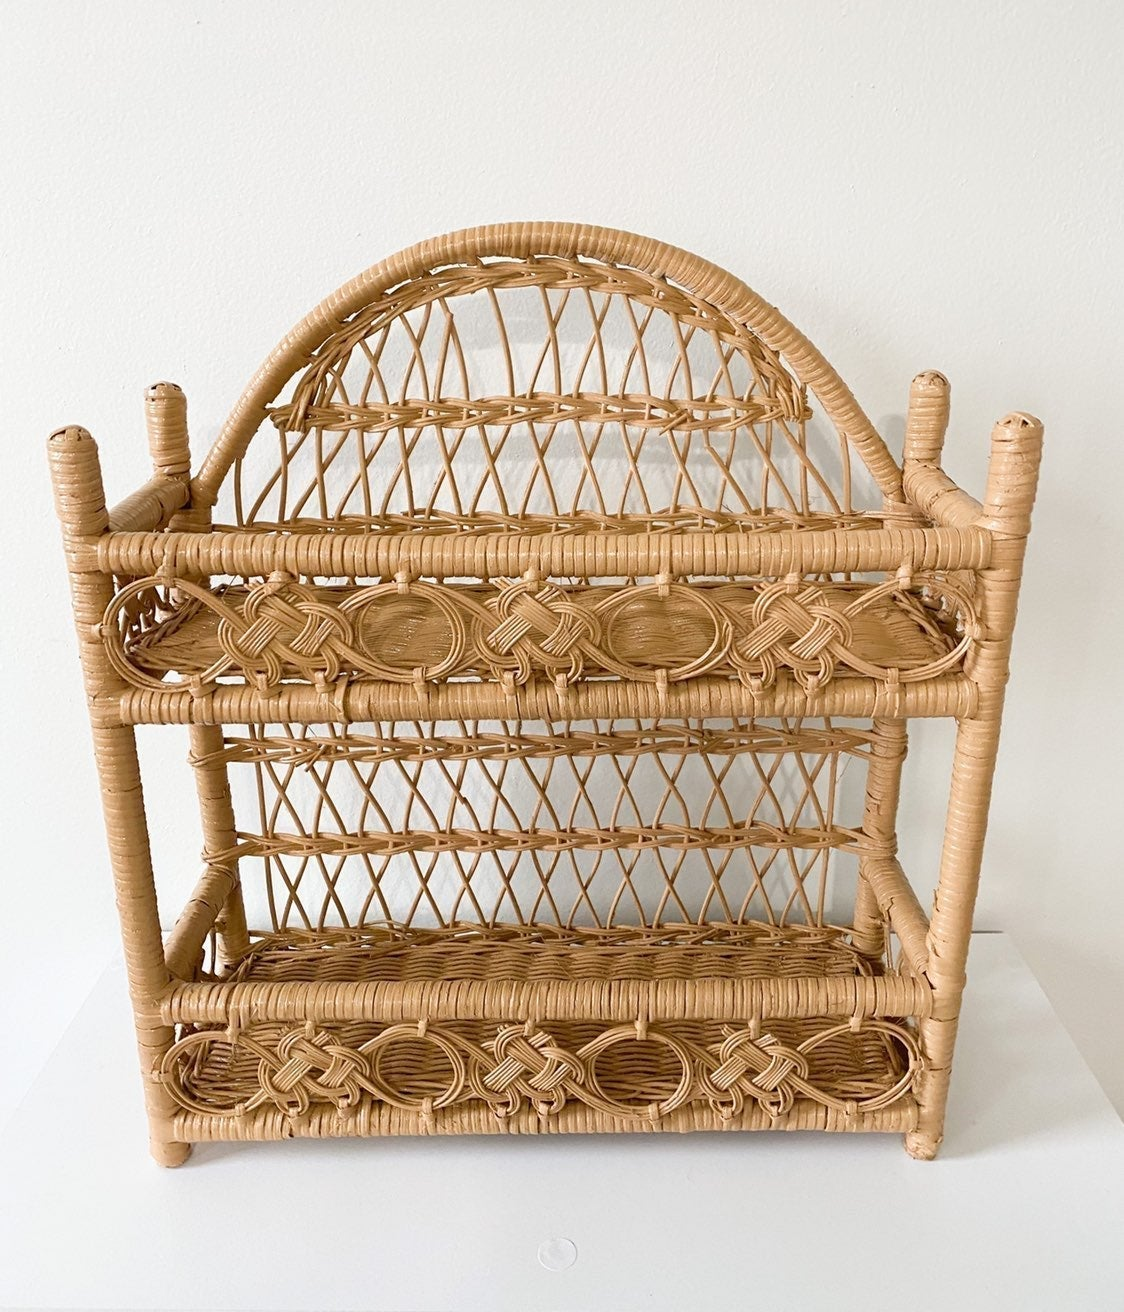 Boho rattan wicker shelf